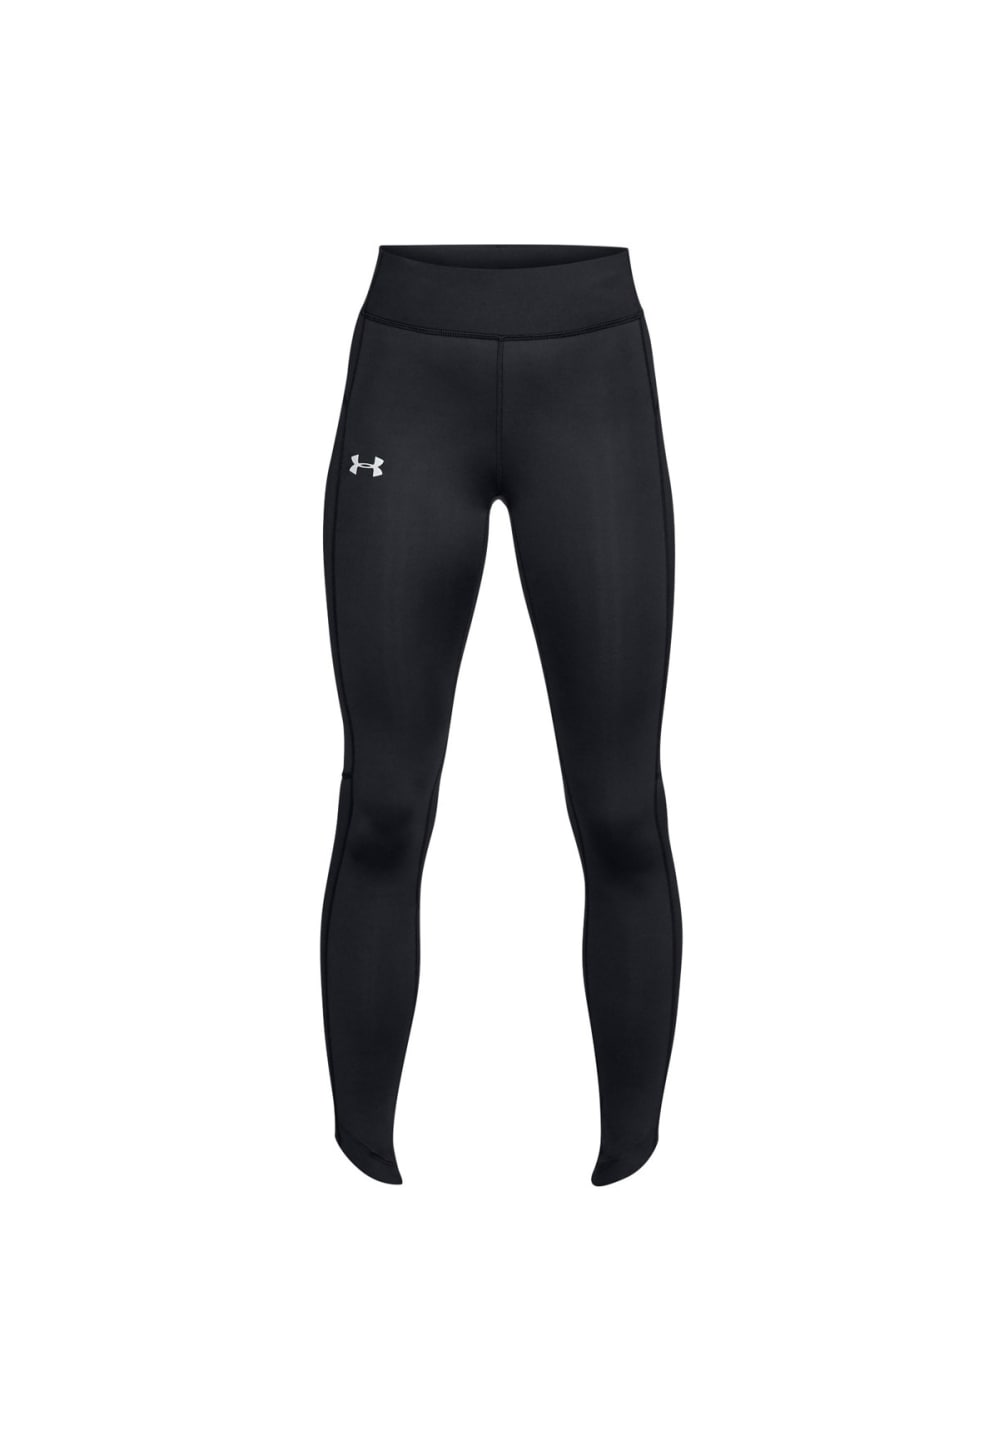 1f036766e Under Armour Outrun The Storm Speedpocket Tight - Running trousers for  Women - Black